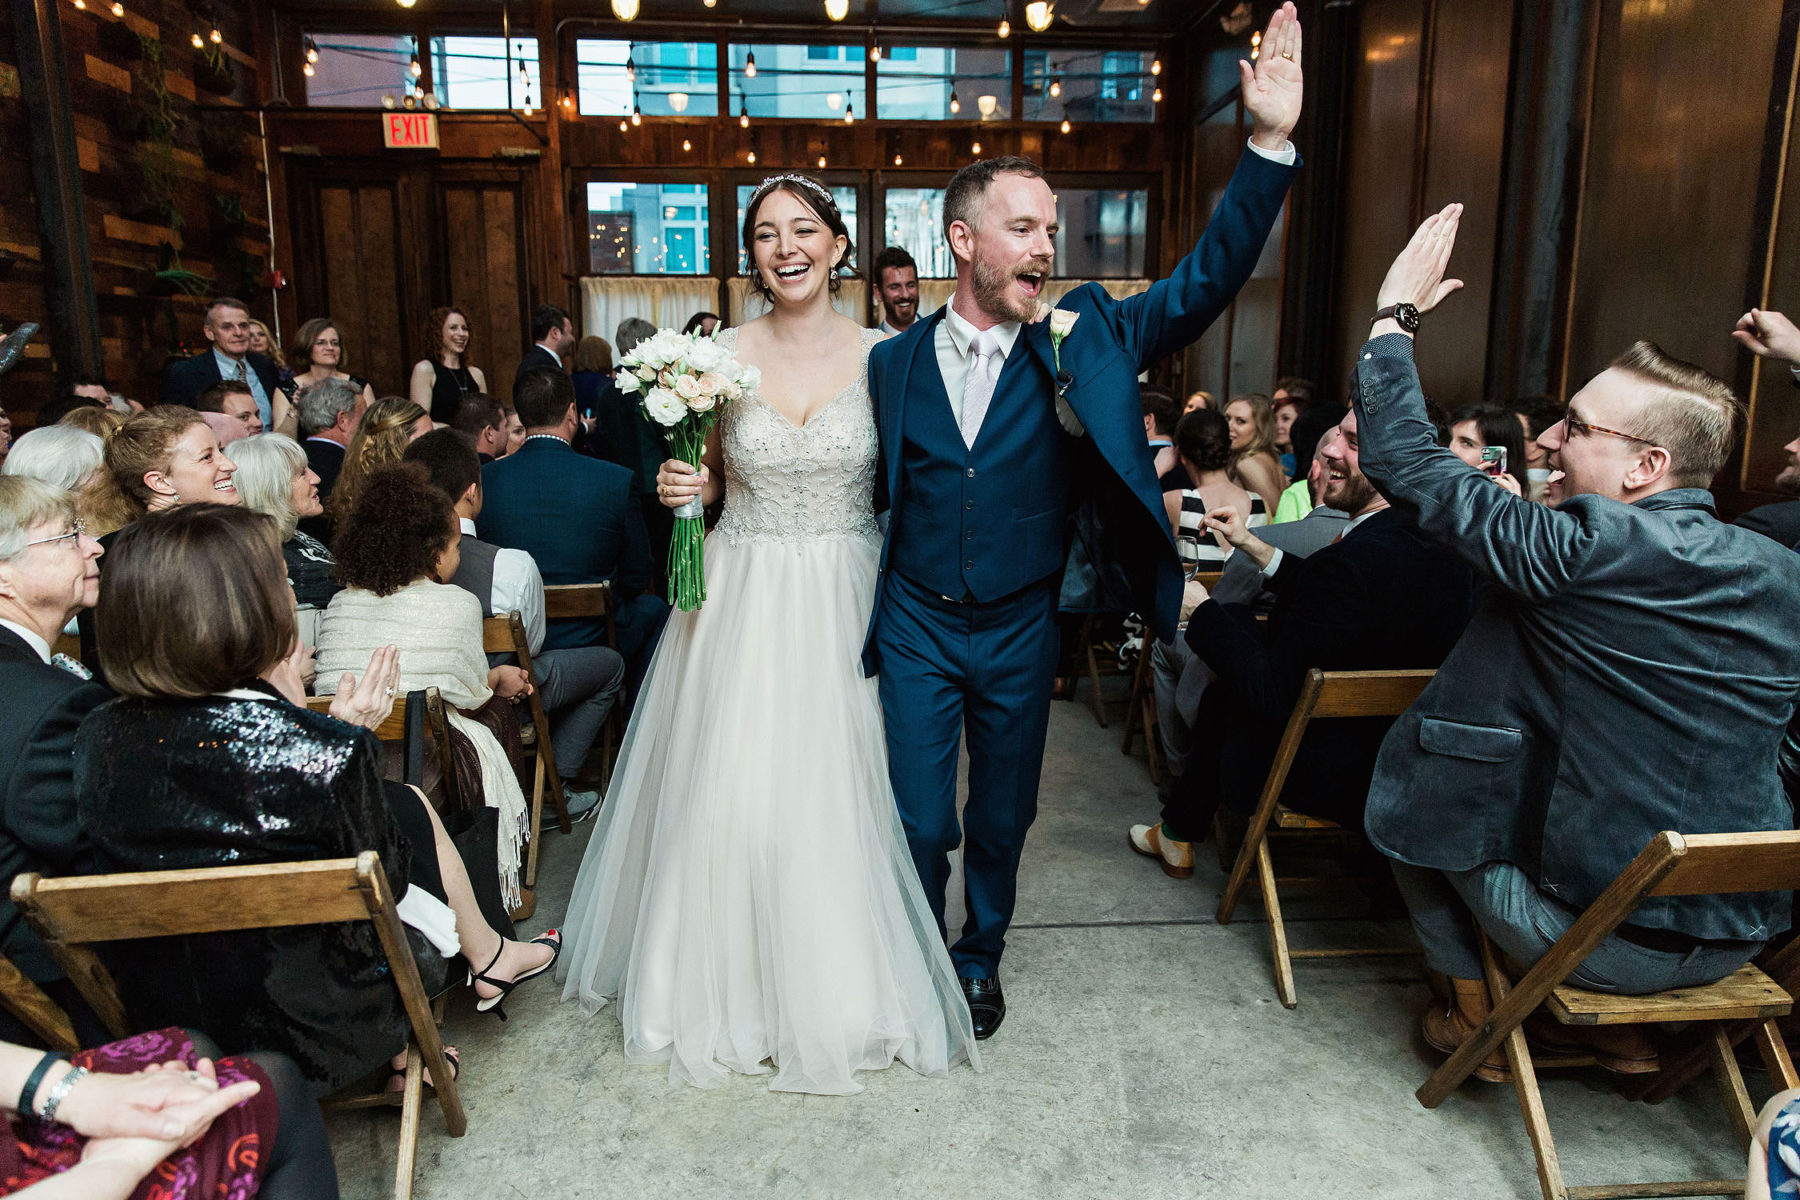 Amazing Wedding Recessional Pictures - Brooklyn Winery Wedding Photographers